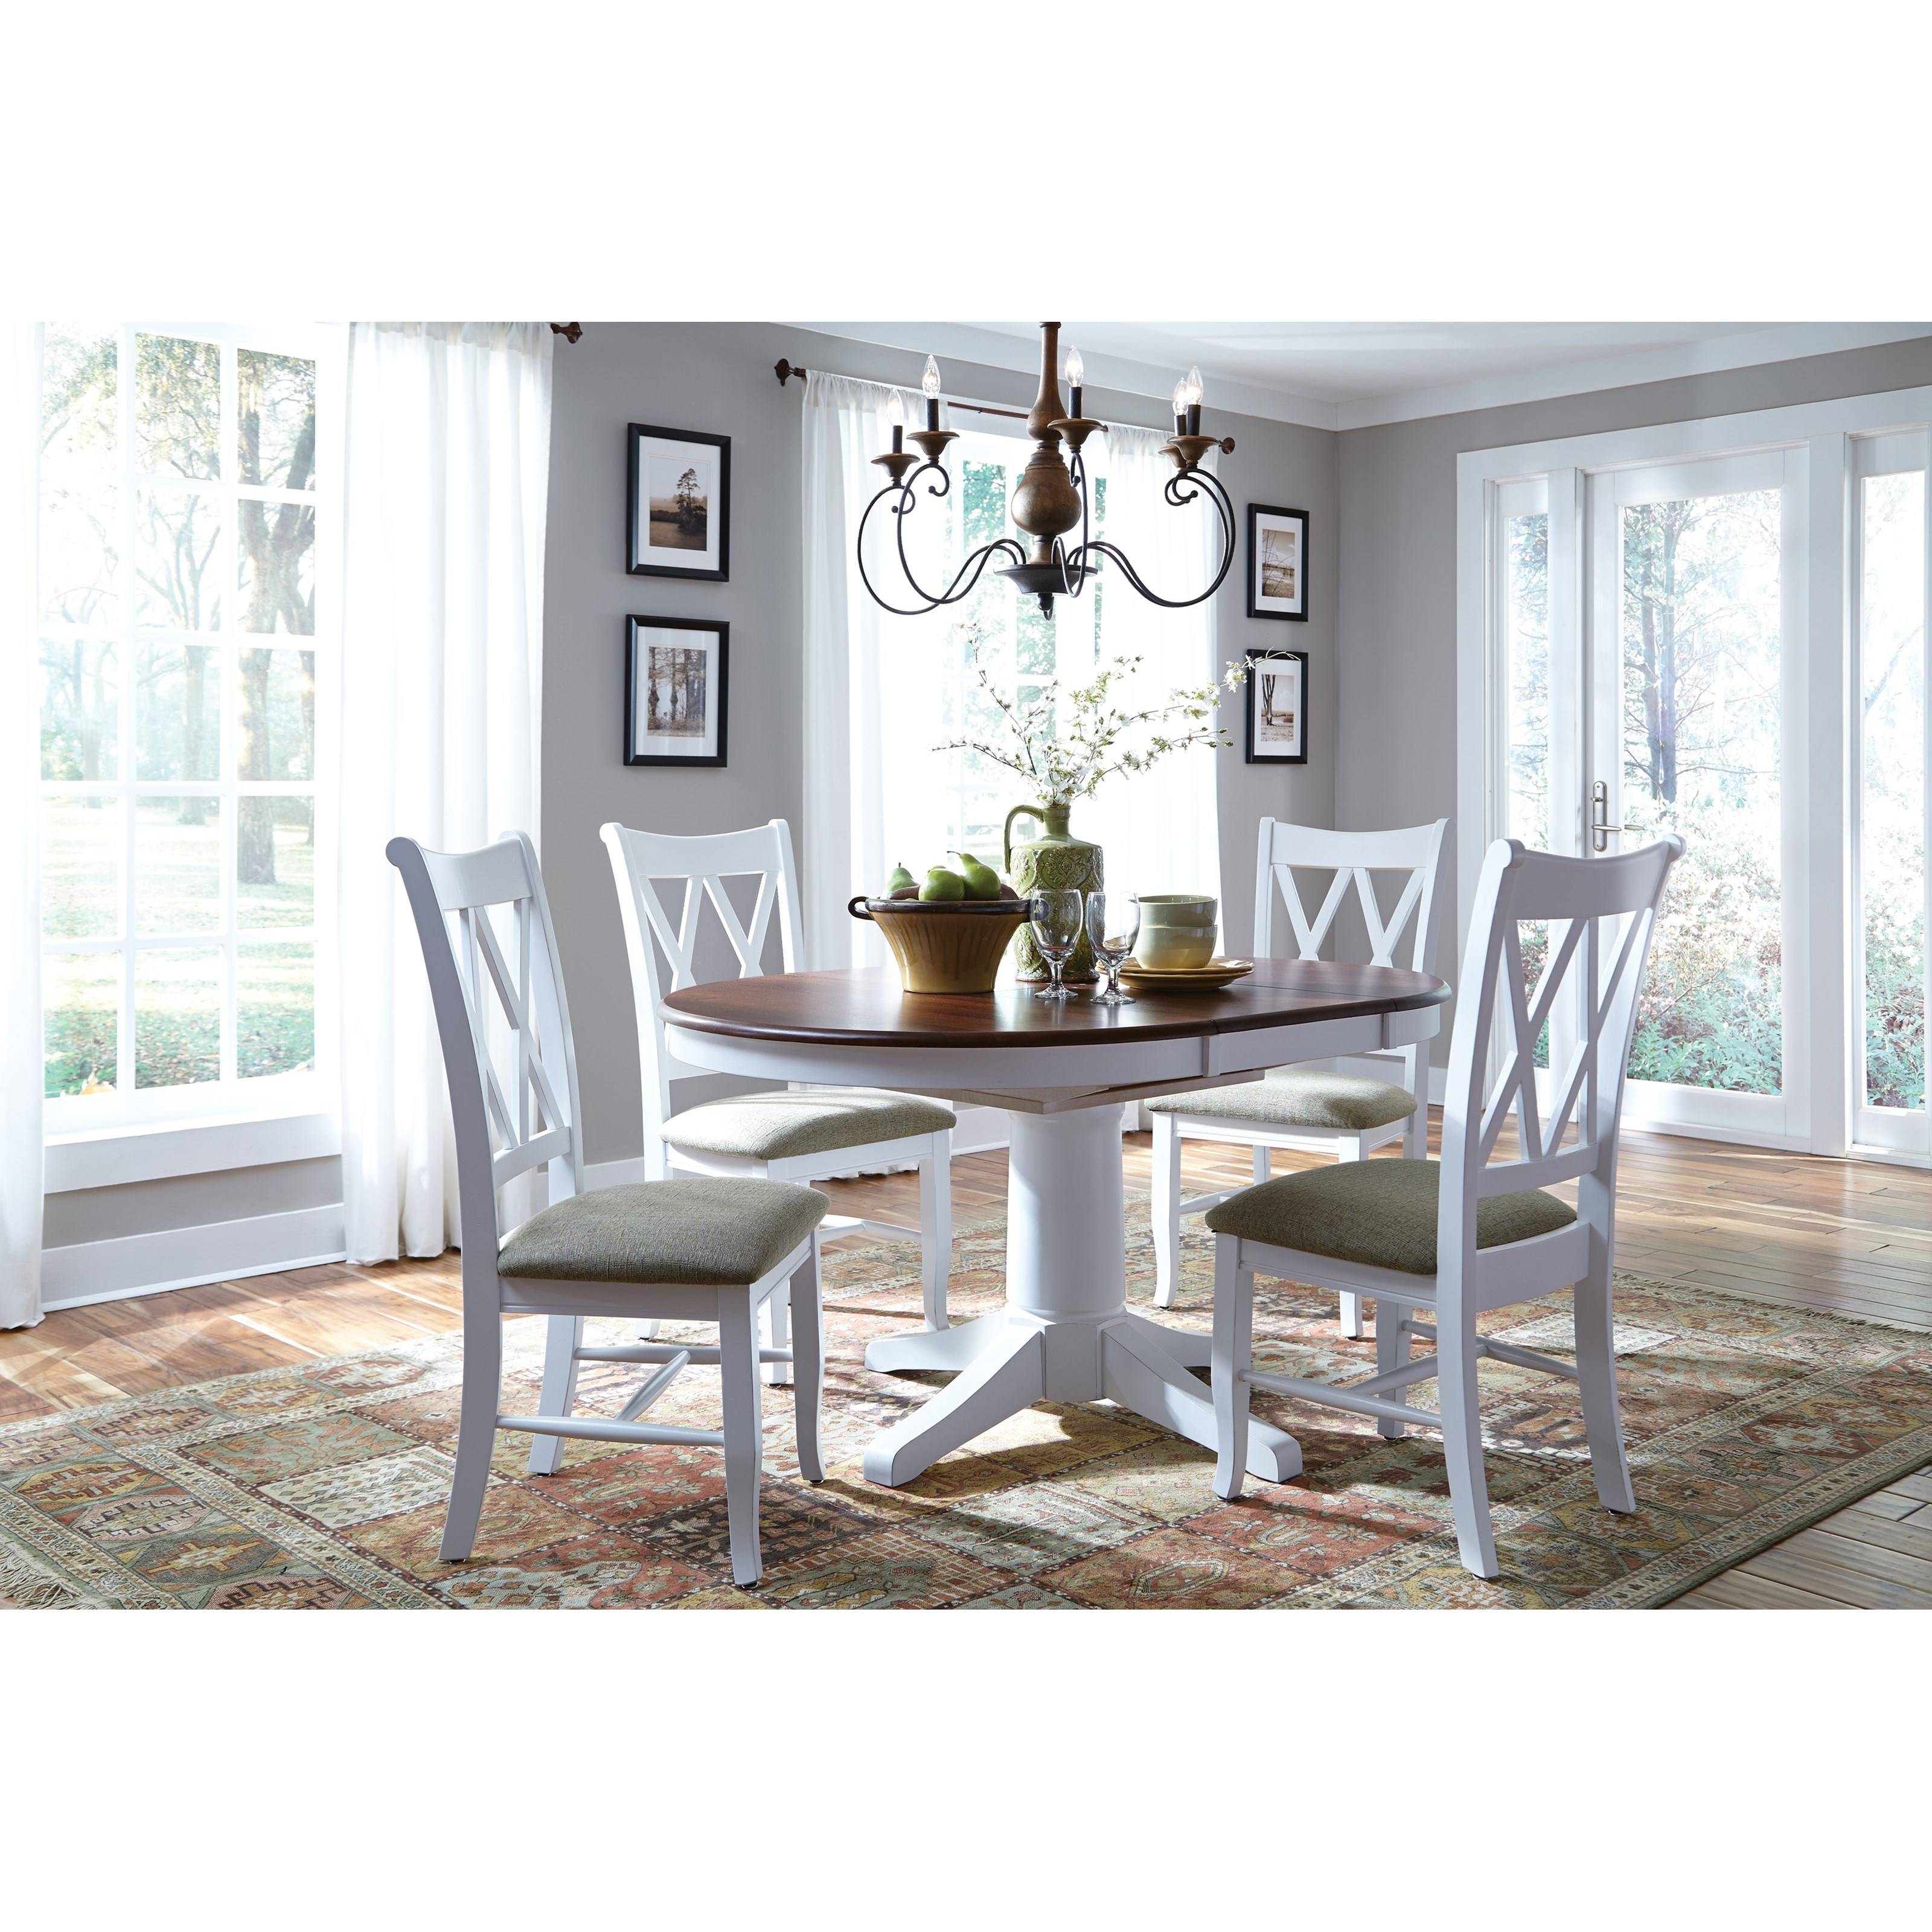 John Thomas Select Dining 5 Piece Dining Set With Double X